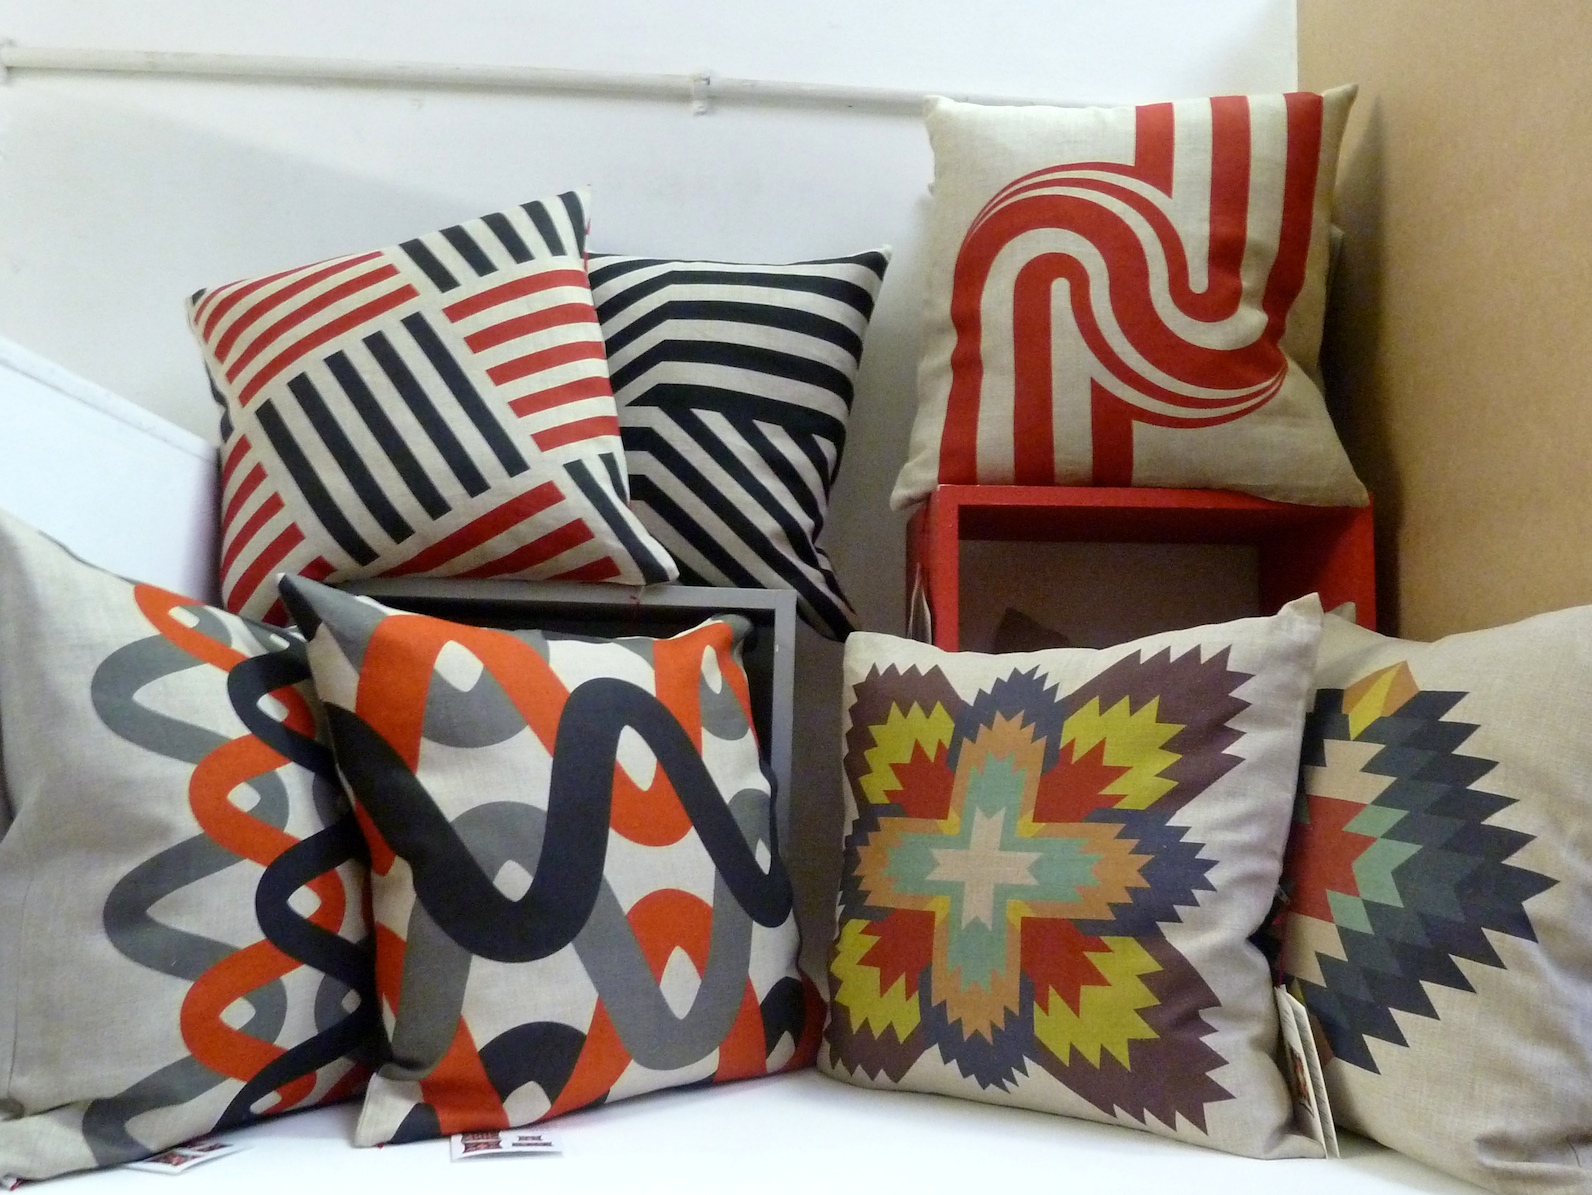 Cushion selection from Marianne Diemer at Theo online store